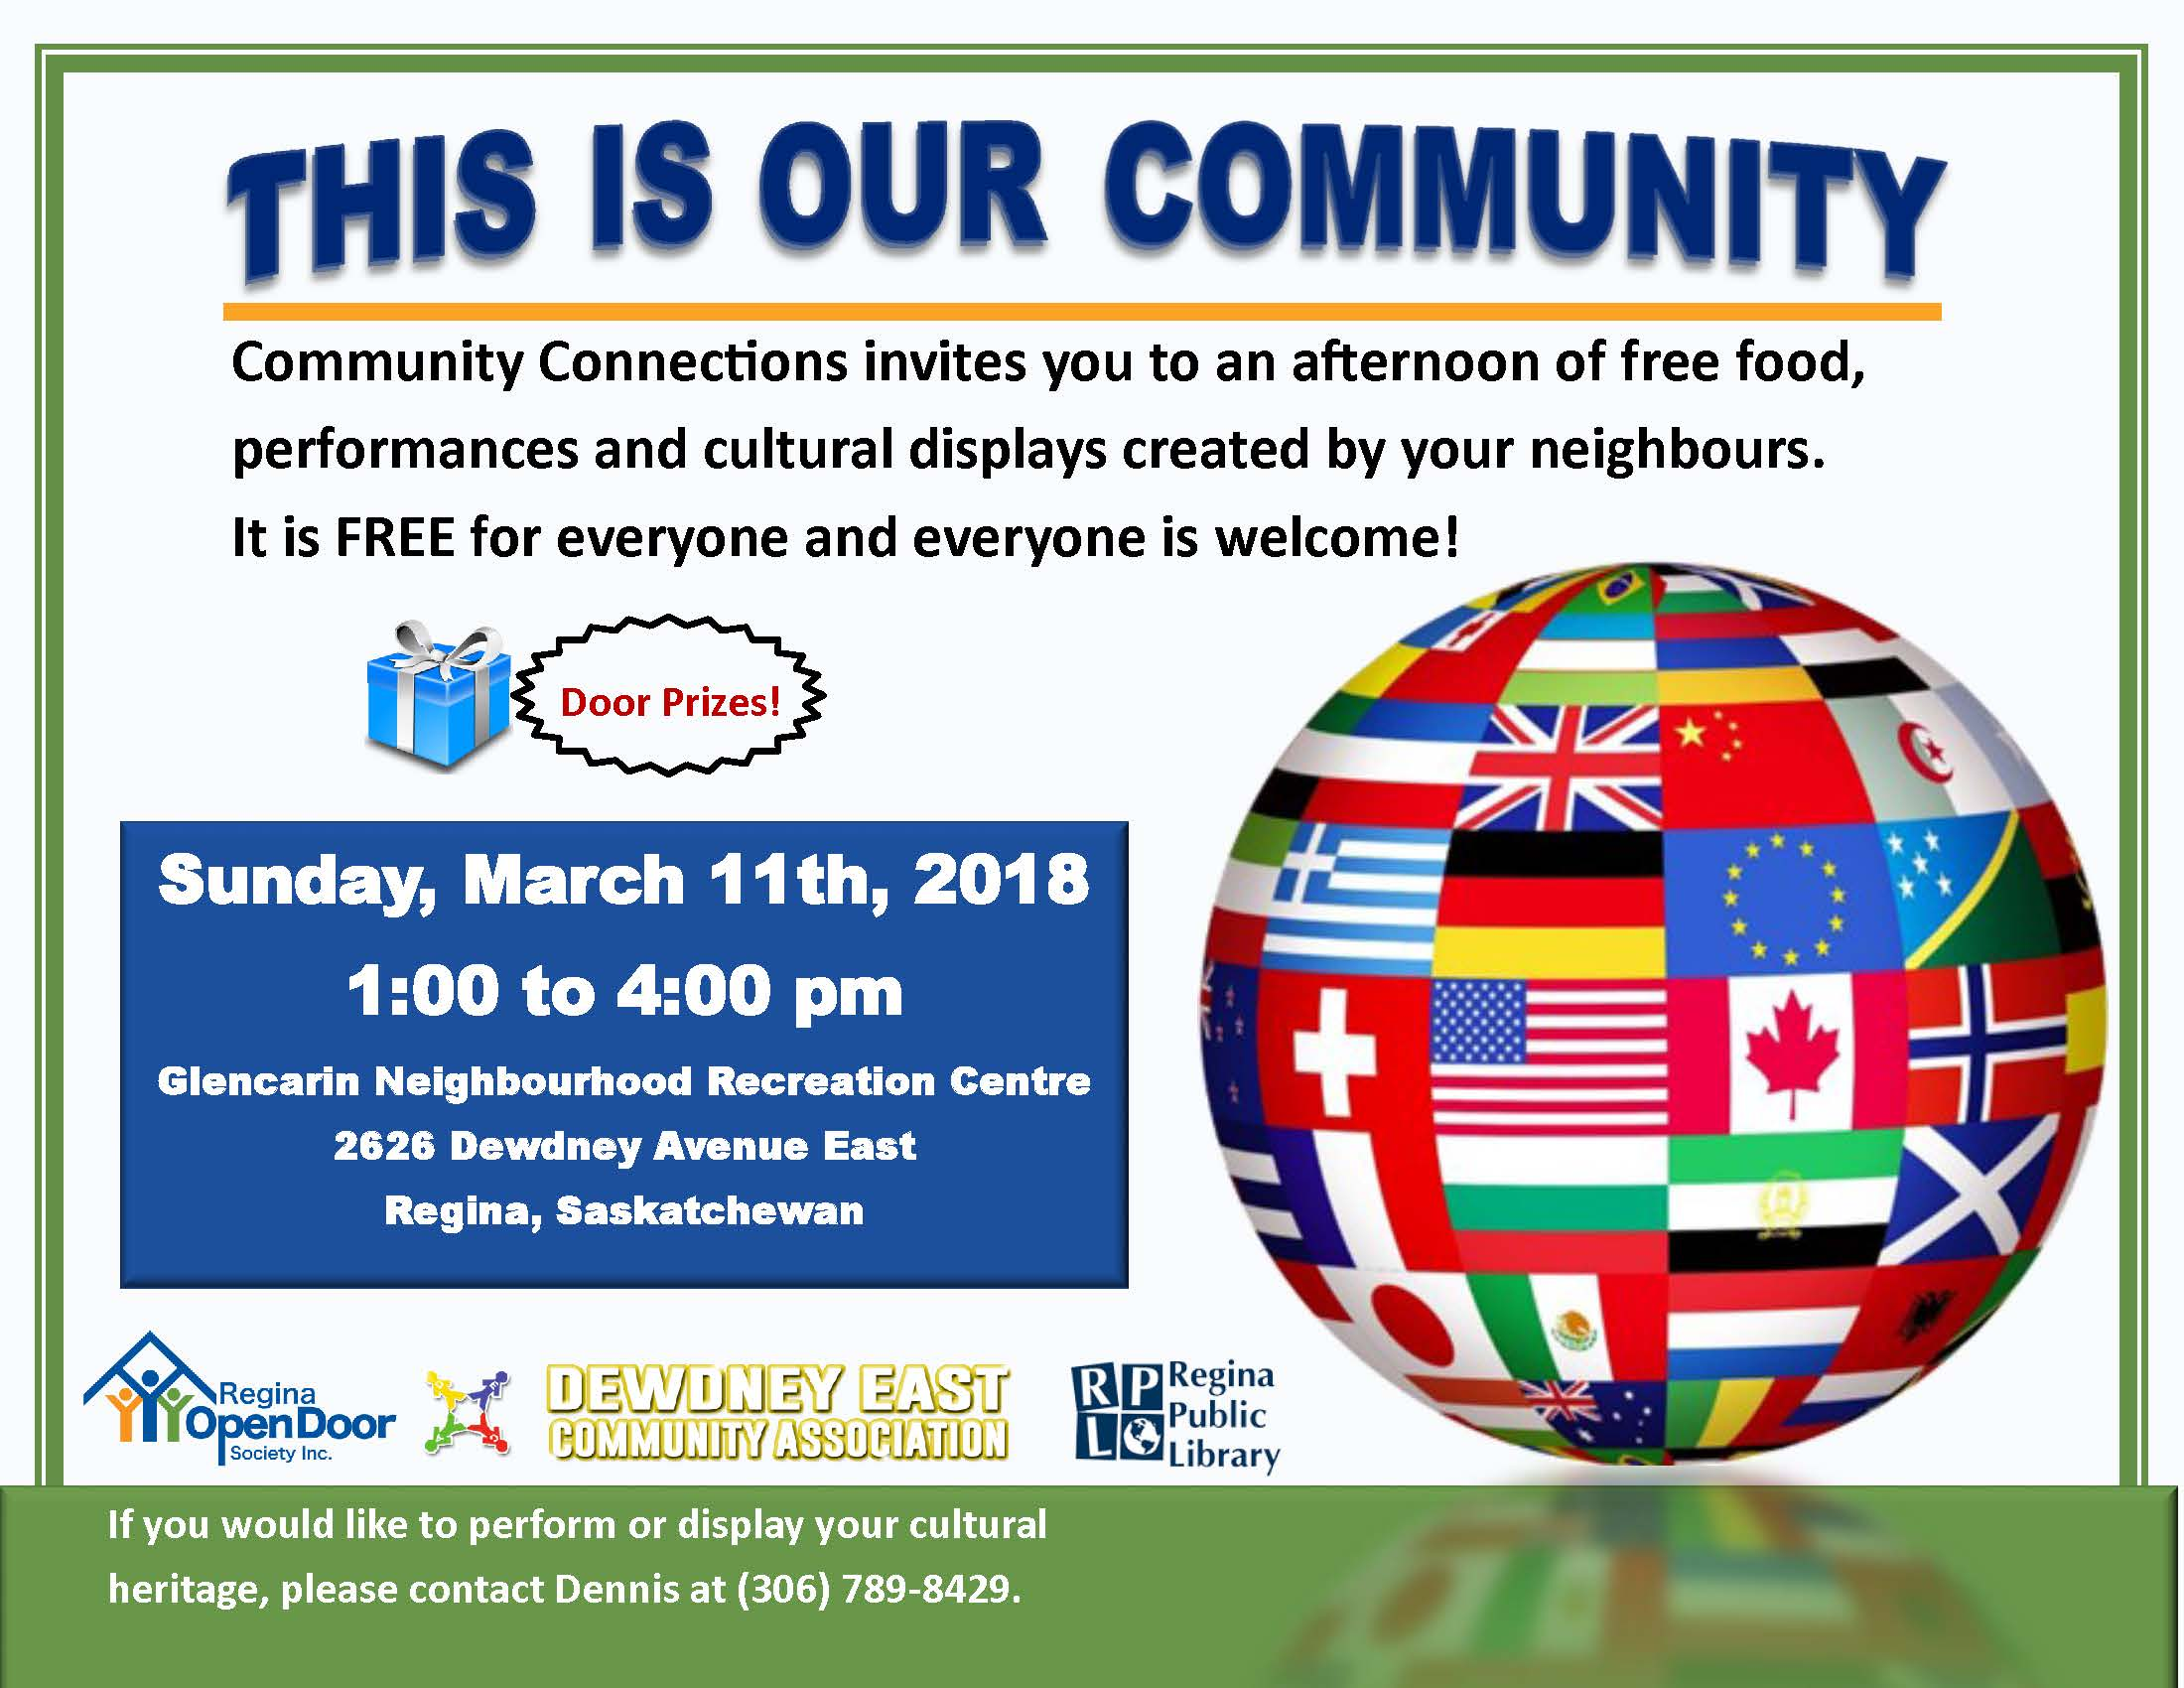 Celebrate Your Community!  March 11th at Glencairn Neighbourhood Rec Centre - Image 1